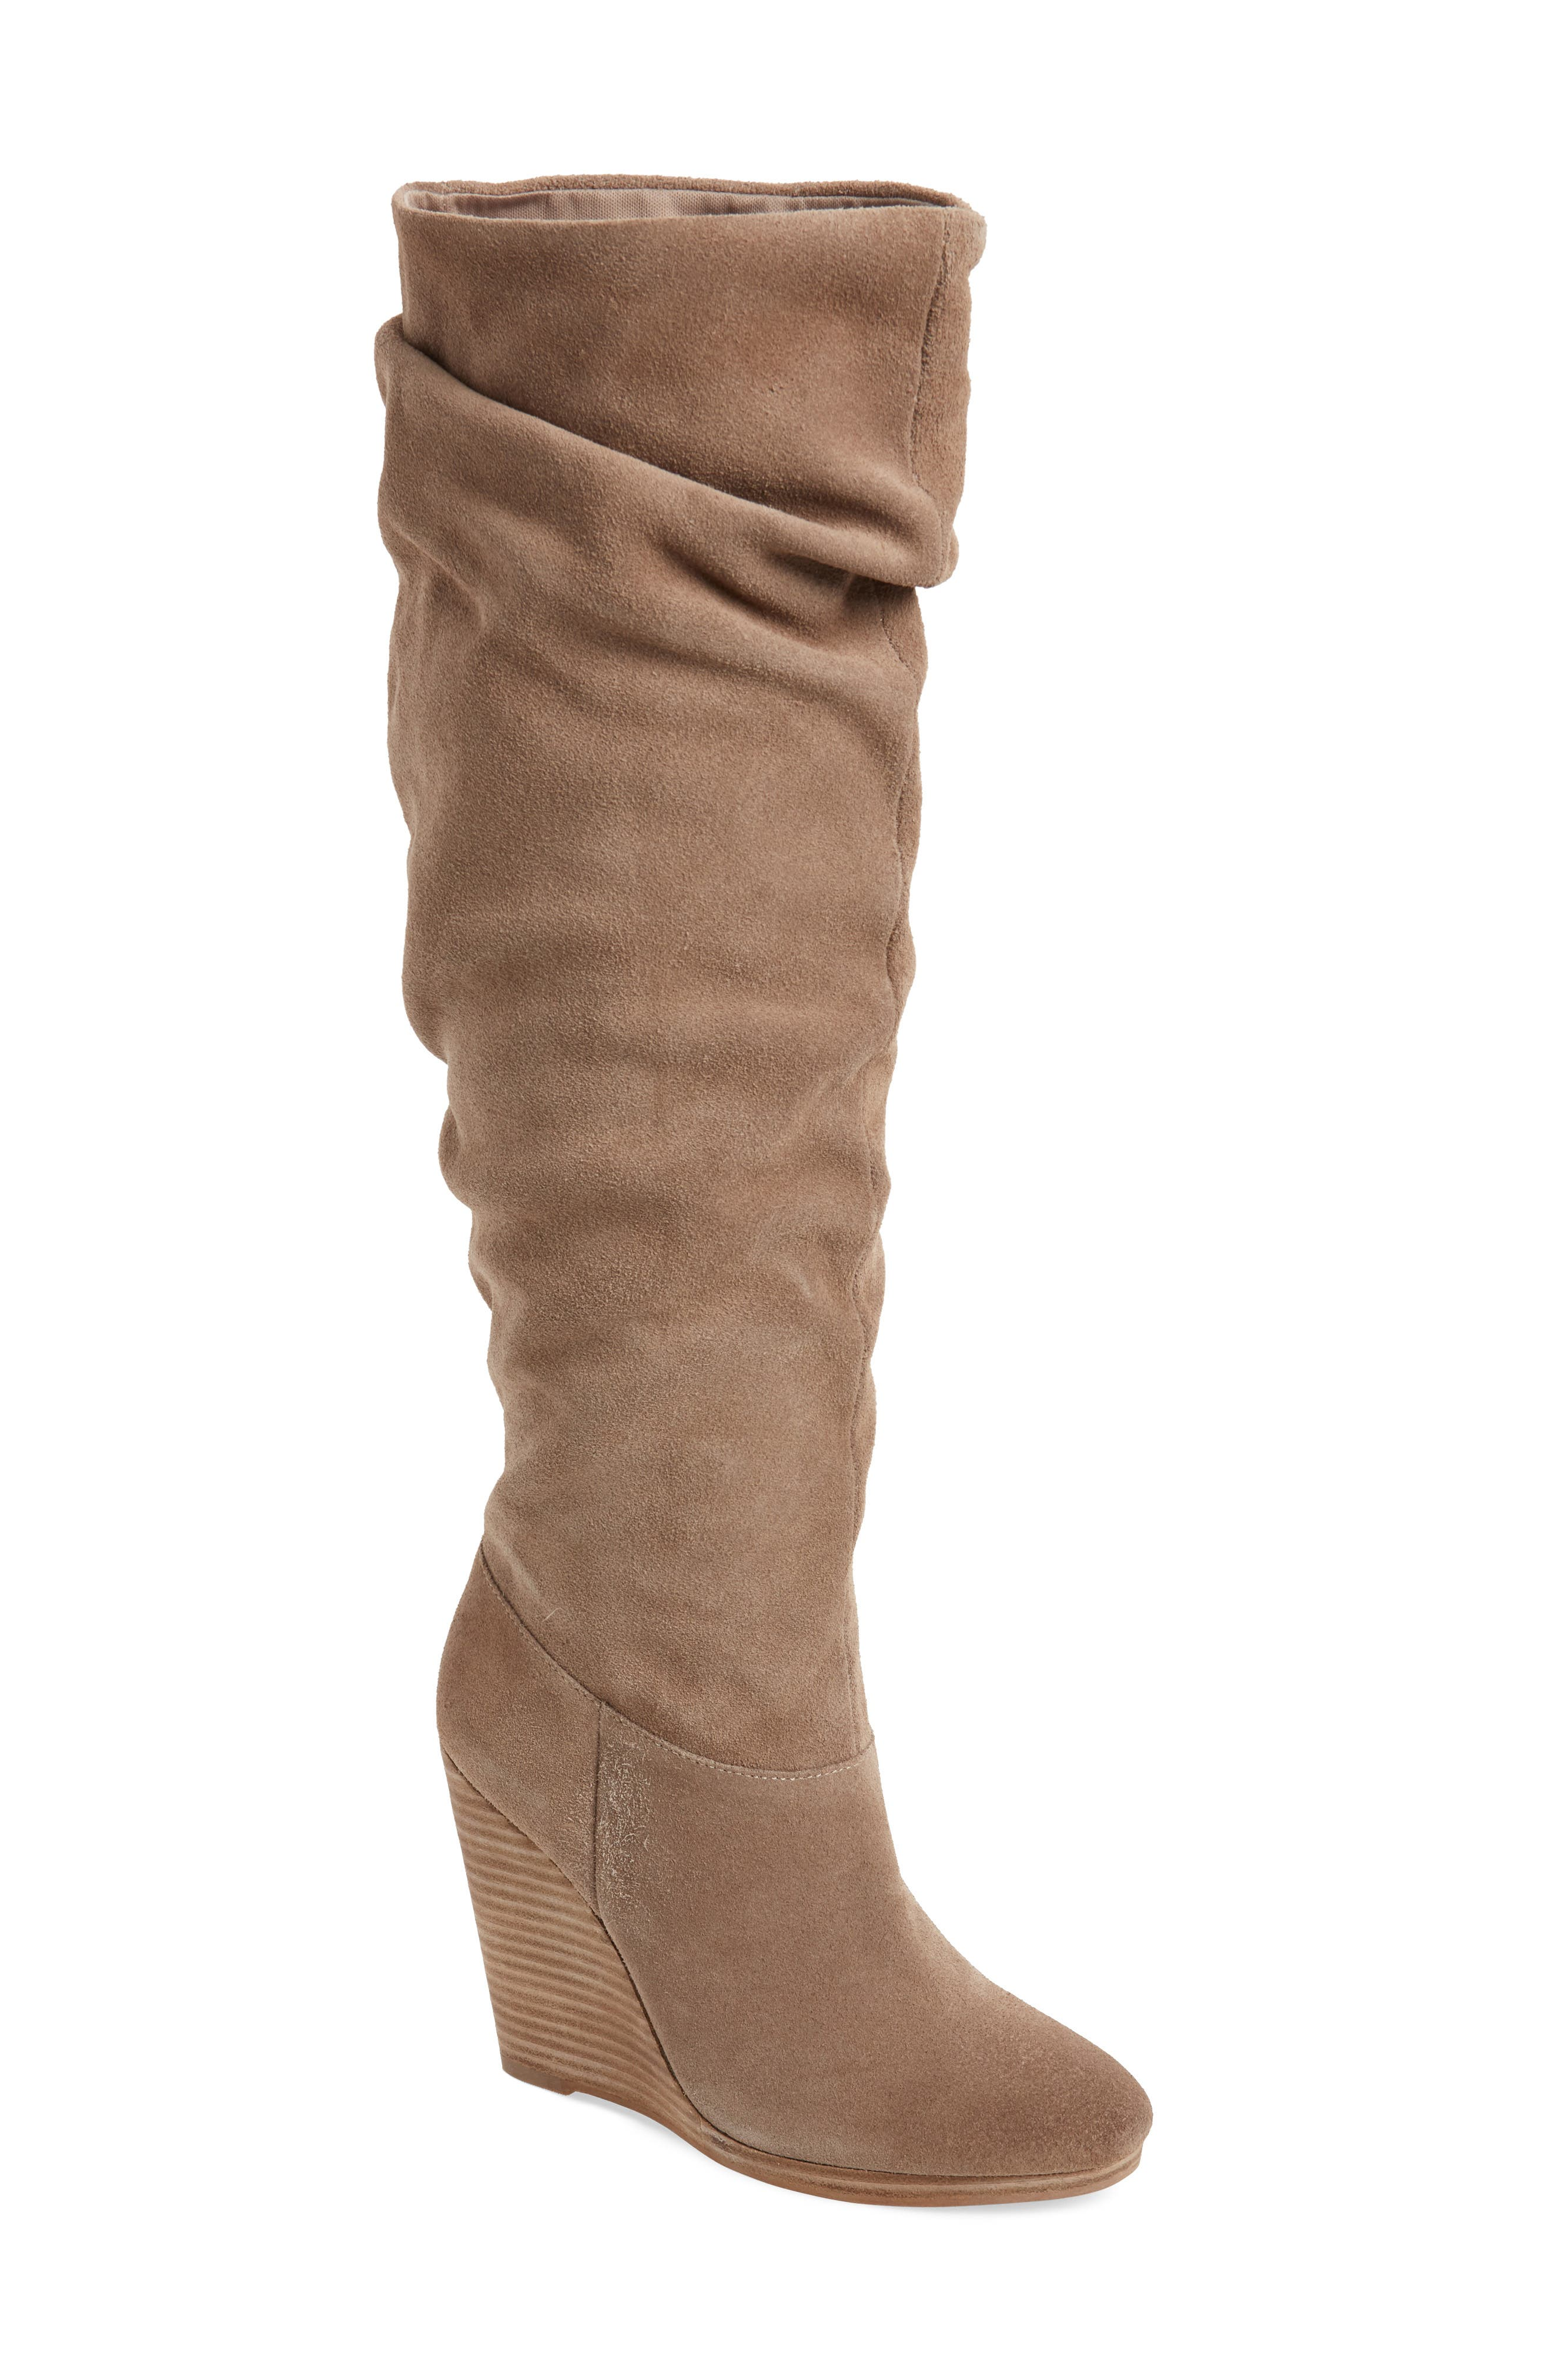 CHARLES BY CHARLES DAVID HOLLY WEDGE BOOT